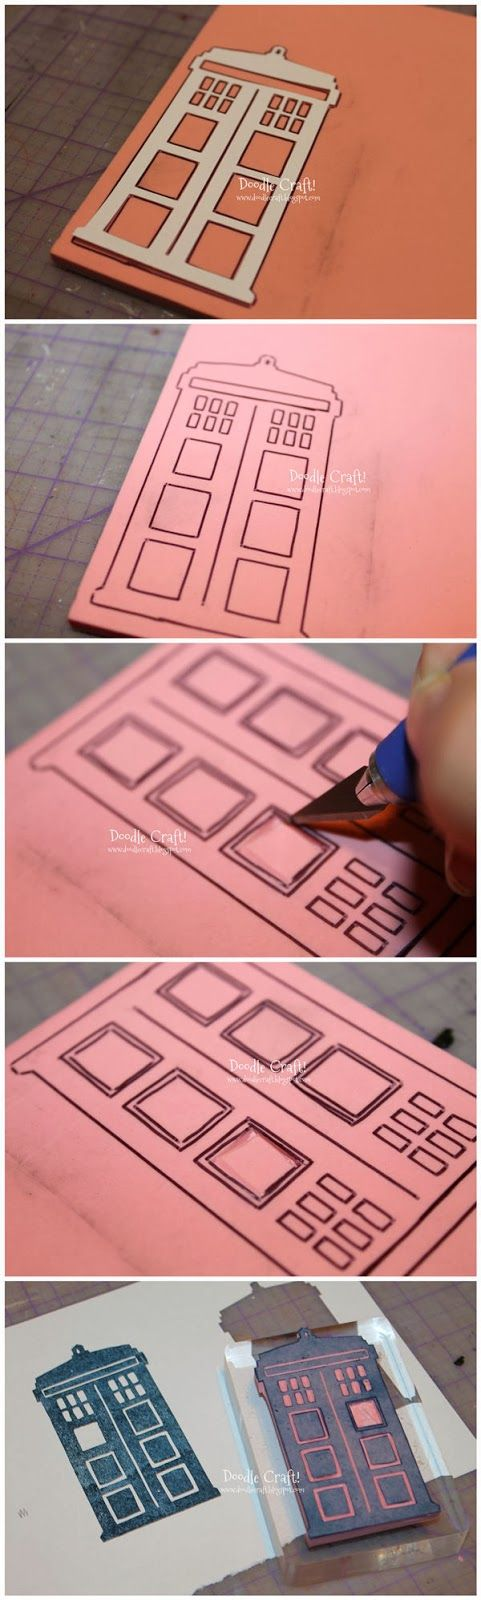 Create Custom Rubber Stamps!